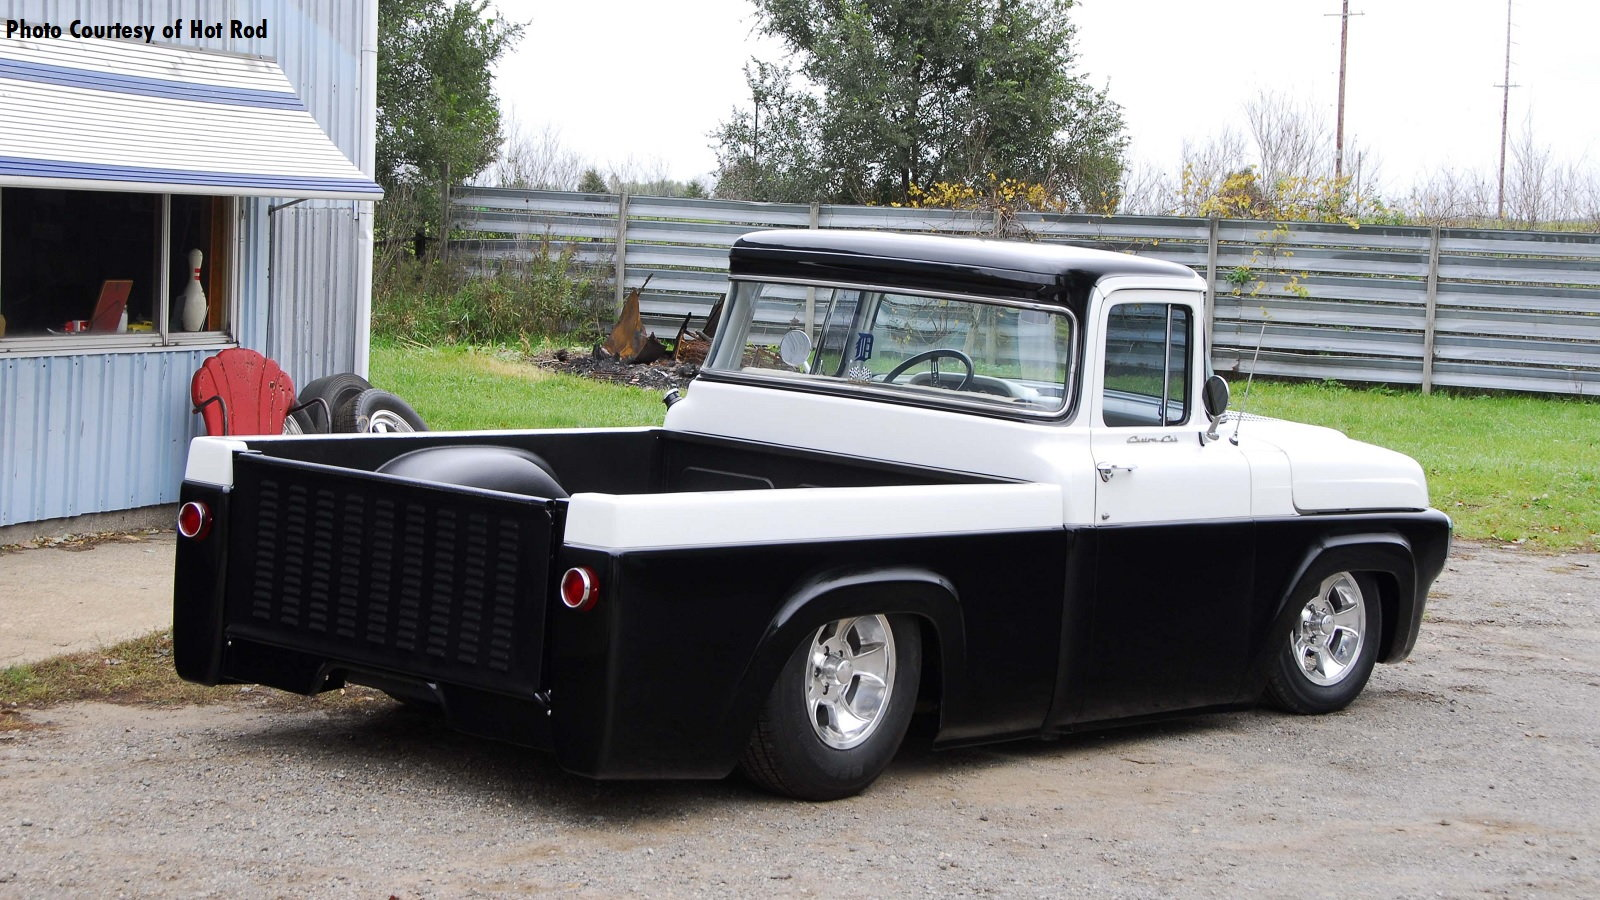 1957 F-100 Has a 4.6-Liter Police Interceptor Heart